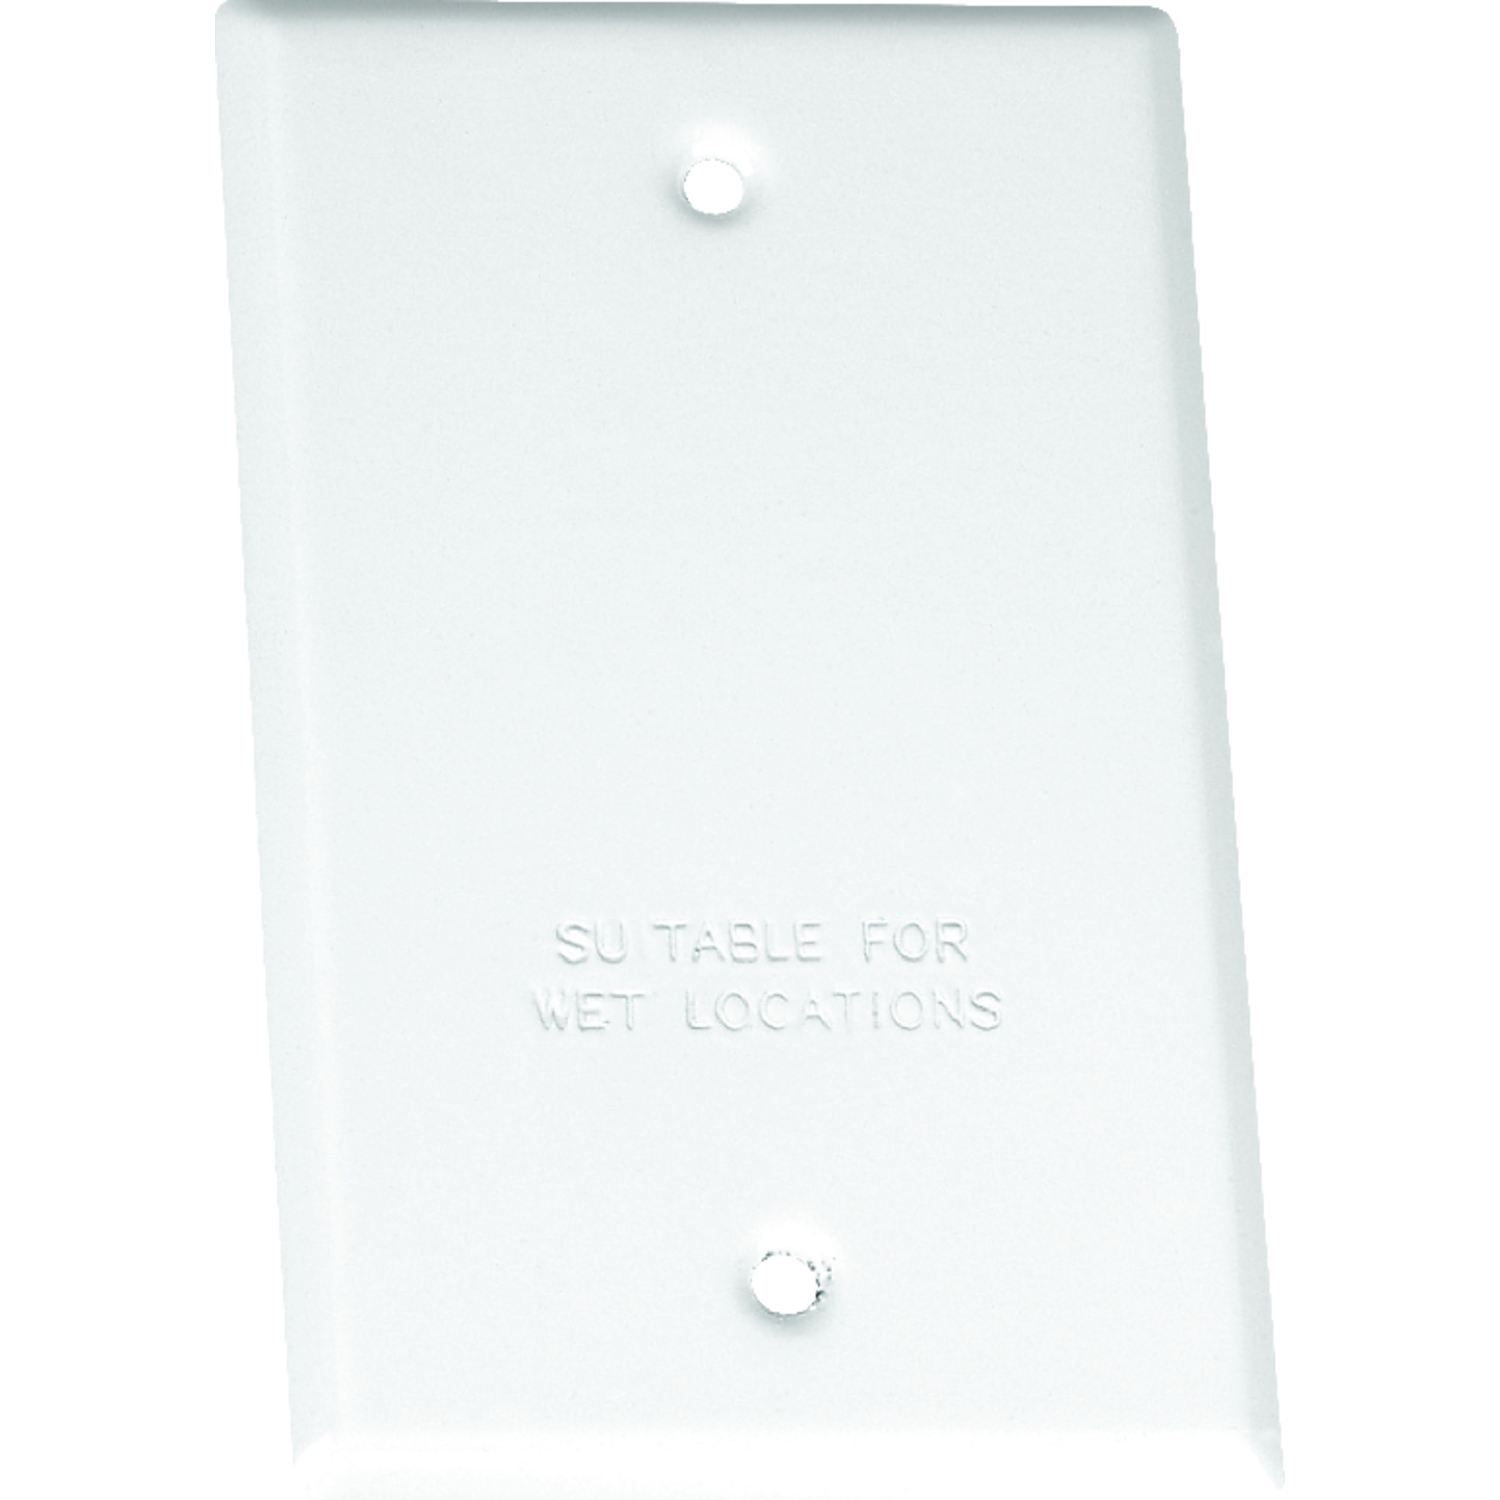 Sigma  Rectangle  Steel  1 gang Blank Box Cover  For Wet Locations